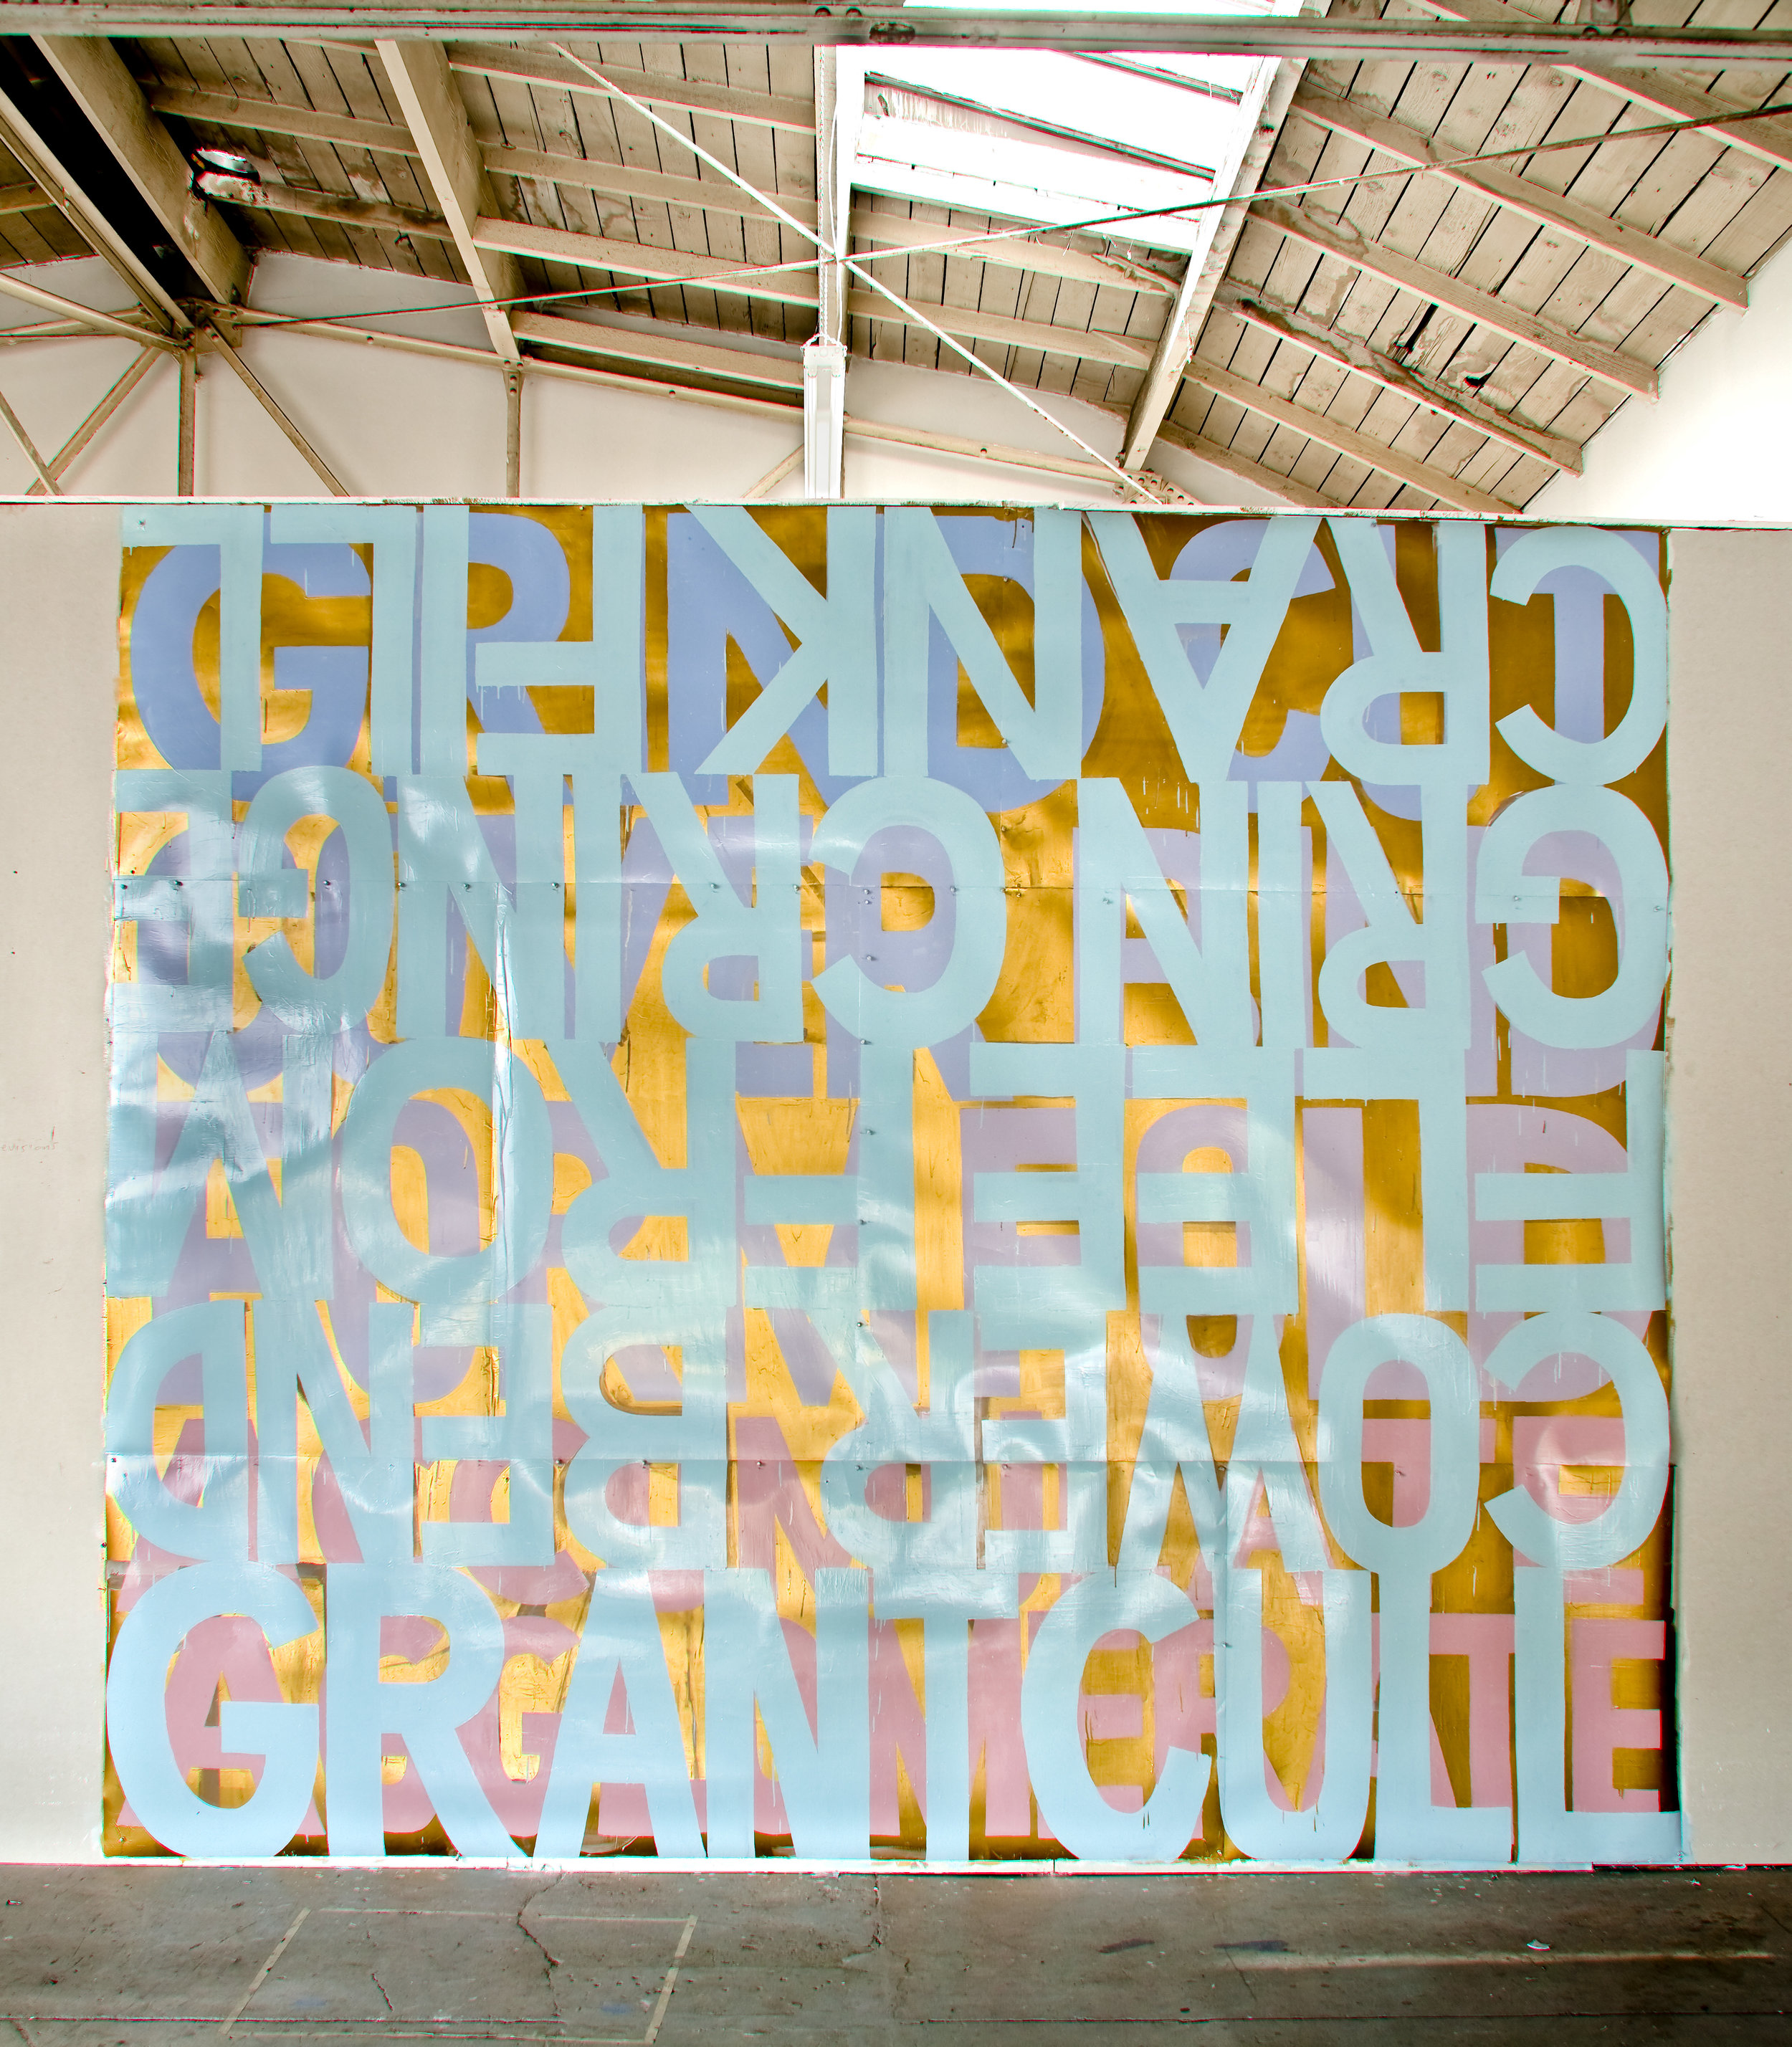 """GRANT CULL / COWER BEND / FLEE FROM / GRIN CRINGE / CRANK FILL 2009-10  Sign paint on laminated digital prints (used in an installation circa 1997-8). 110"""" x 120"""" Photo: Jeannie O'Connor"""